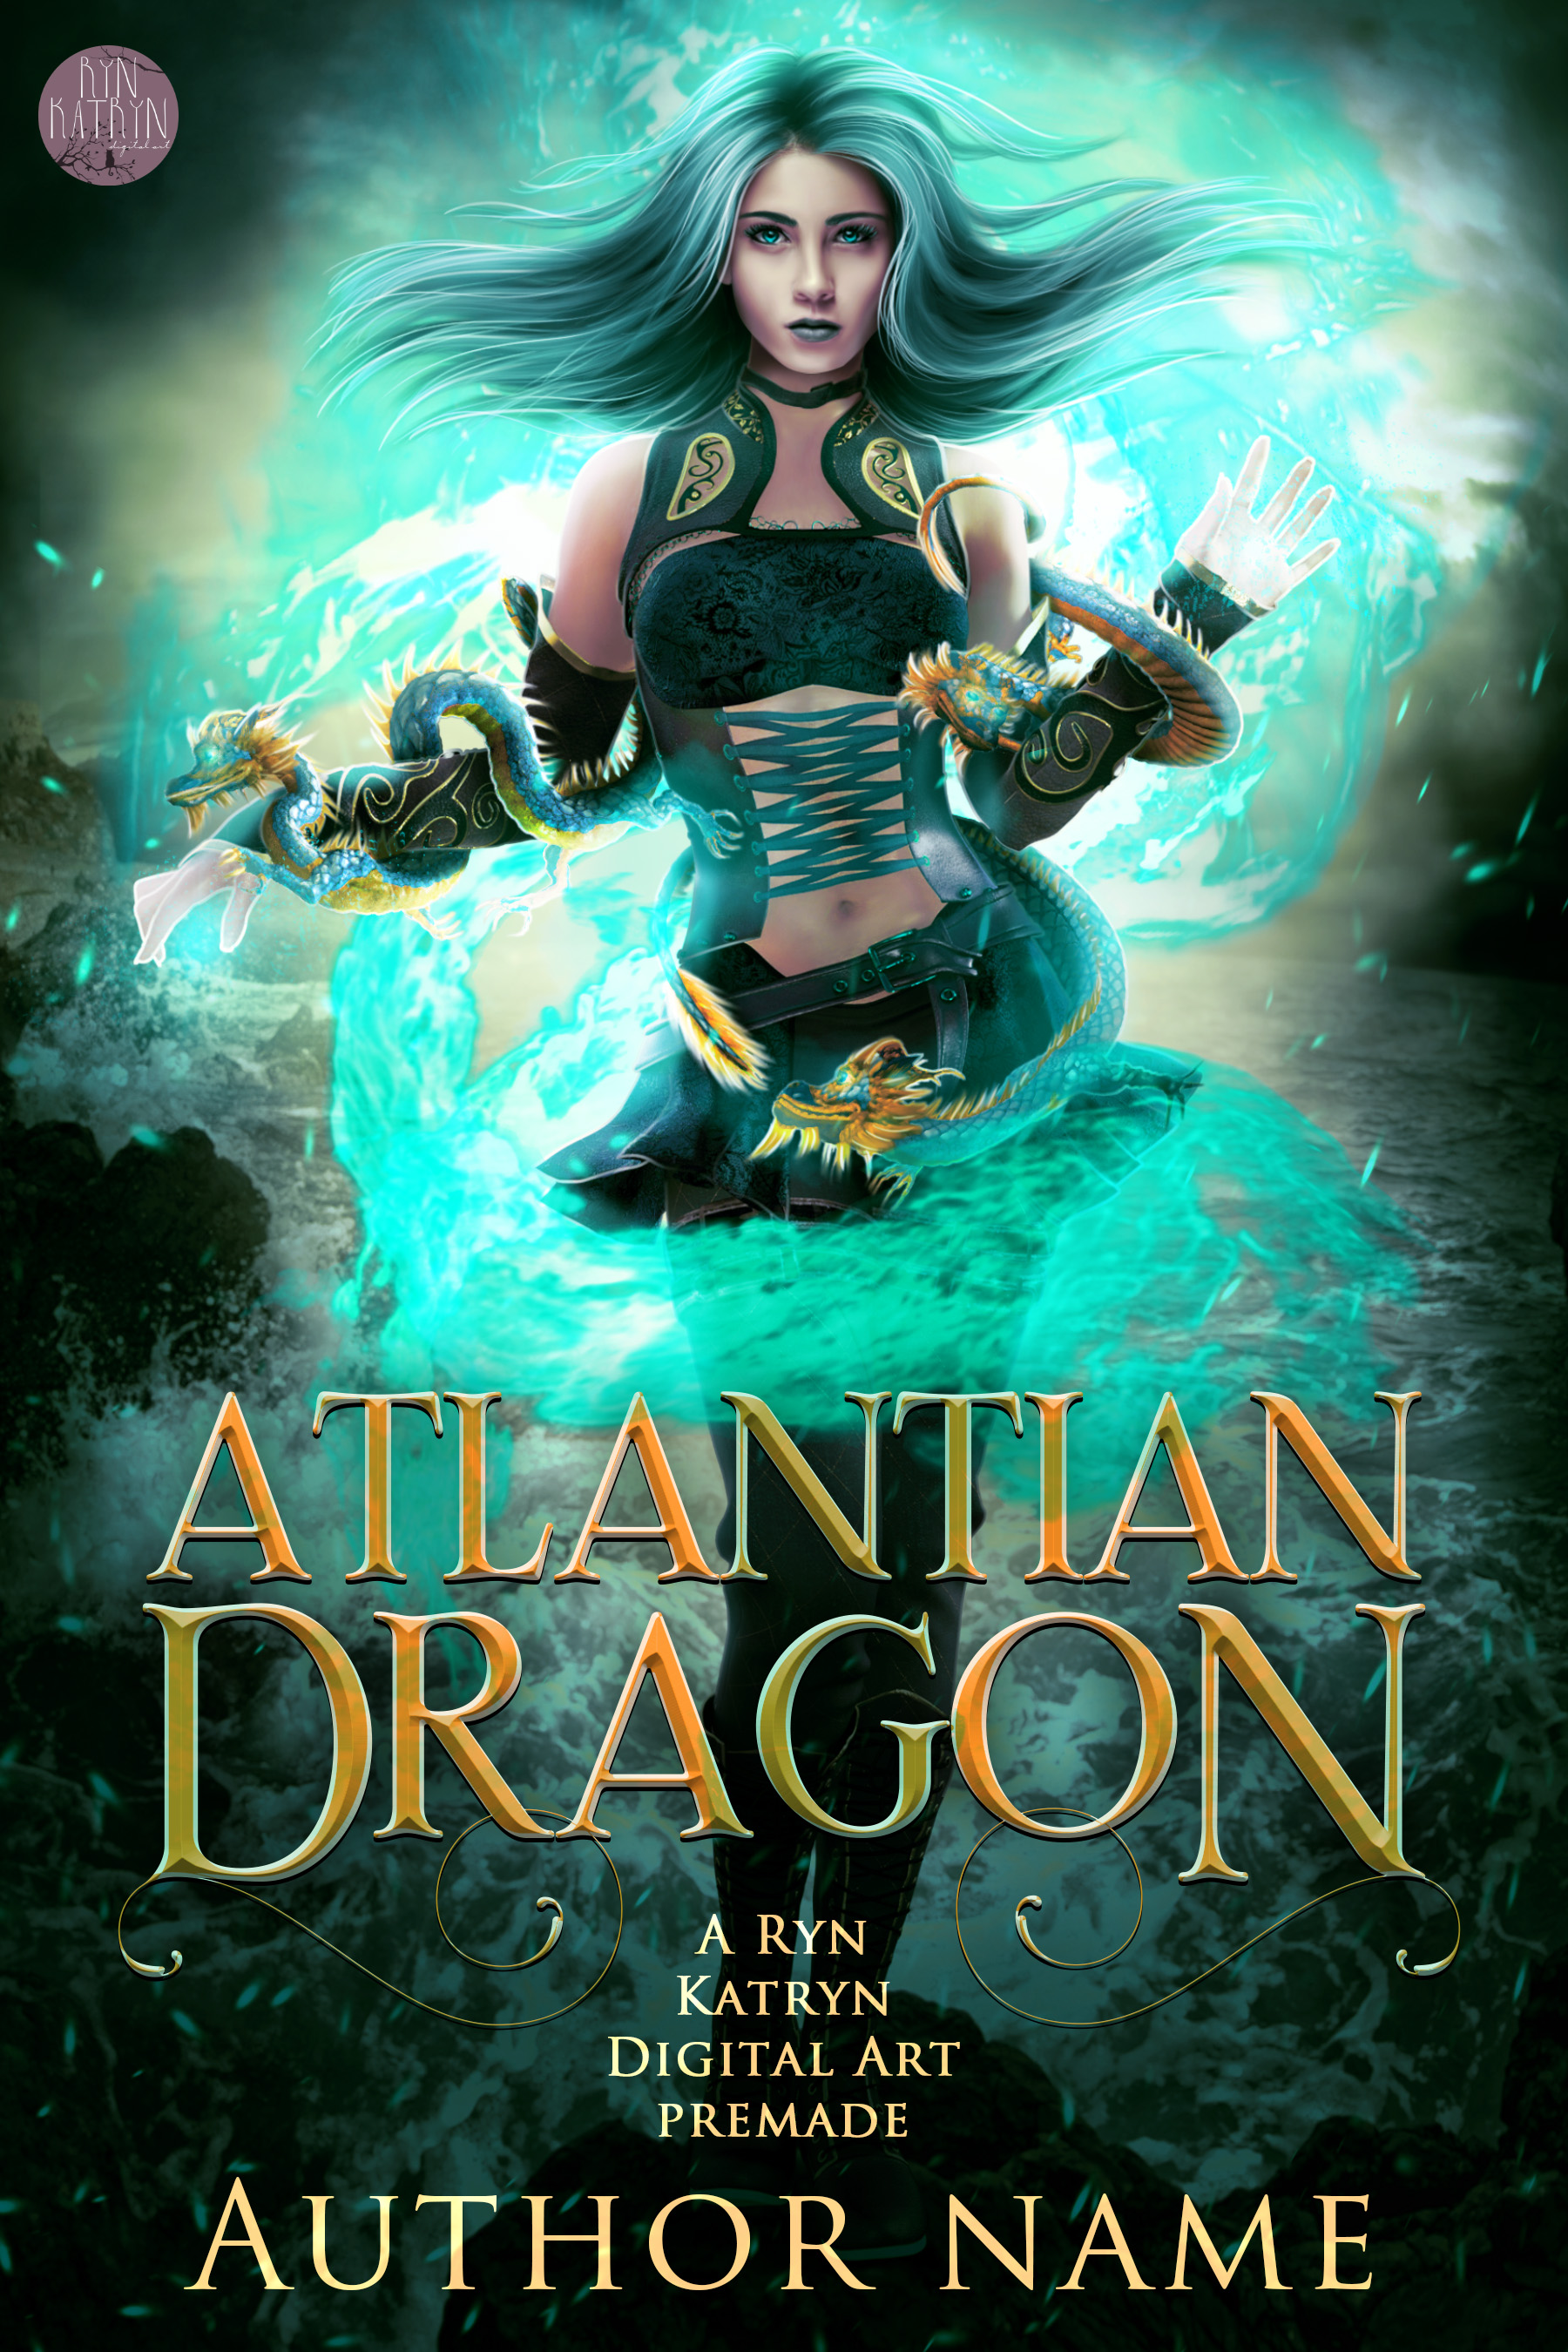 Atlantian Dragon